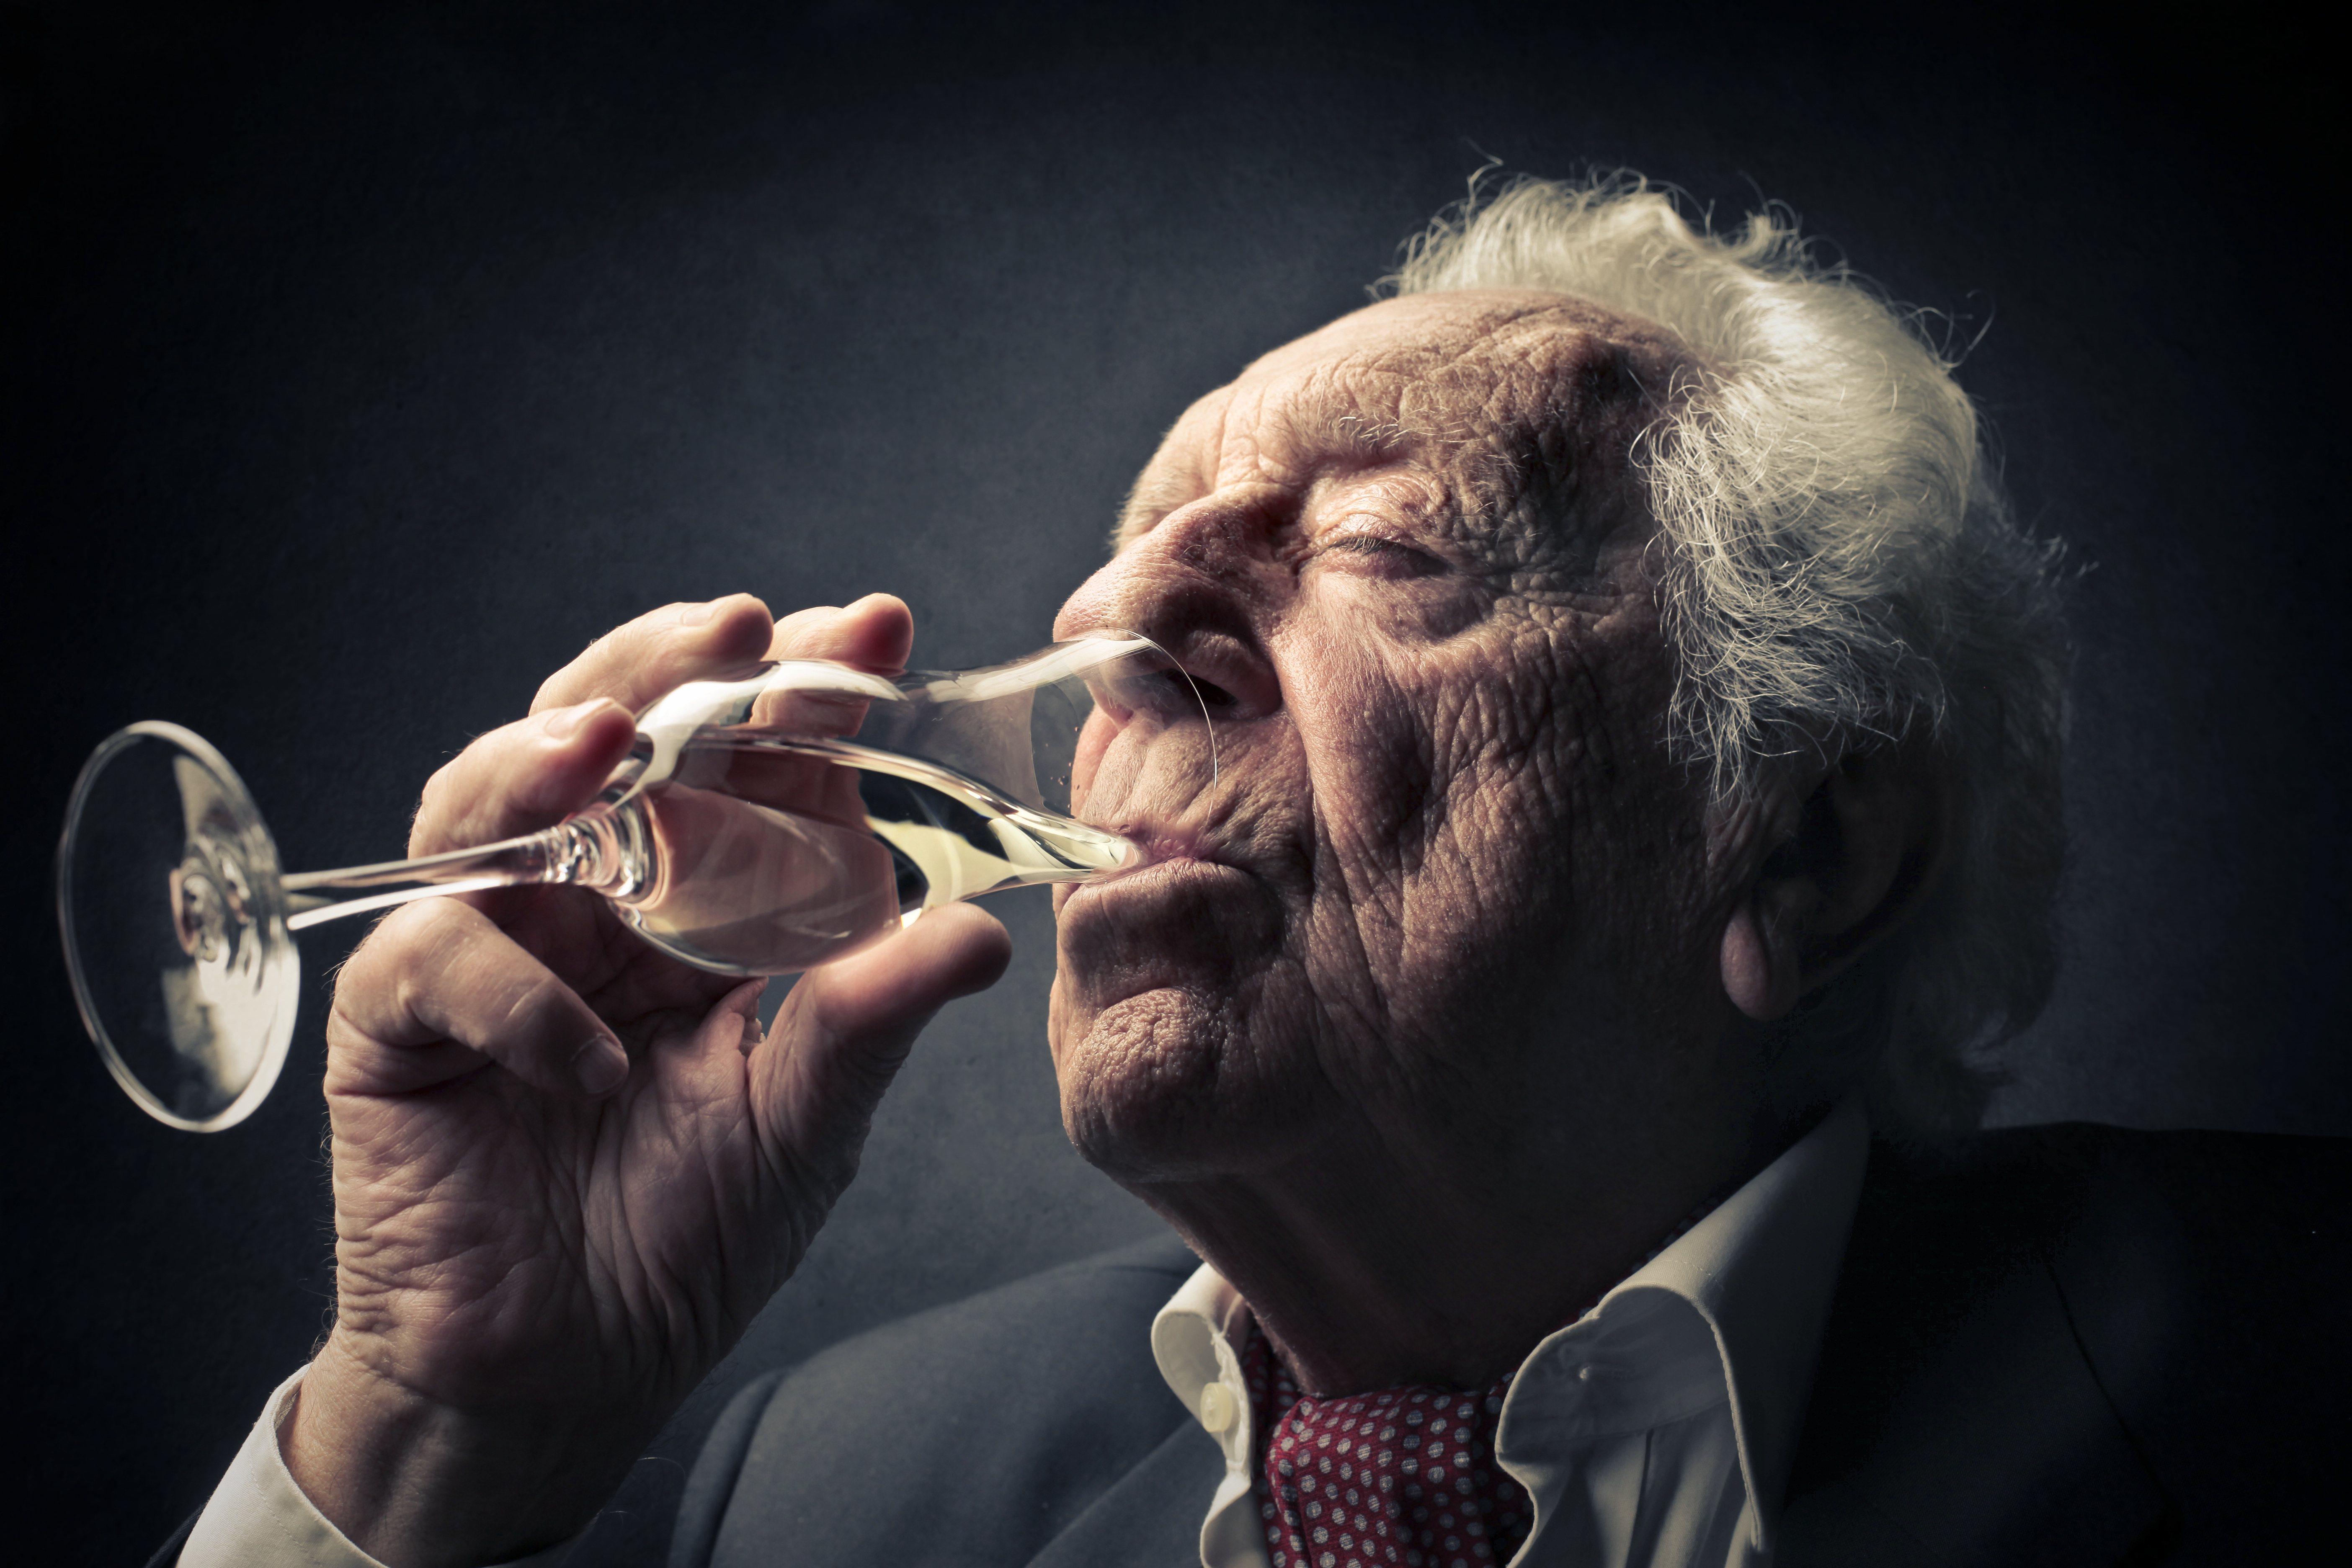 Is Binge Drinking on the Rise in Seniors?